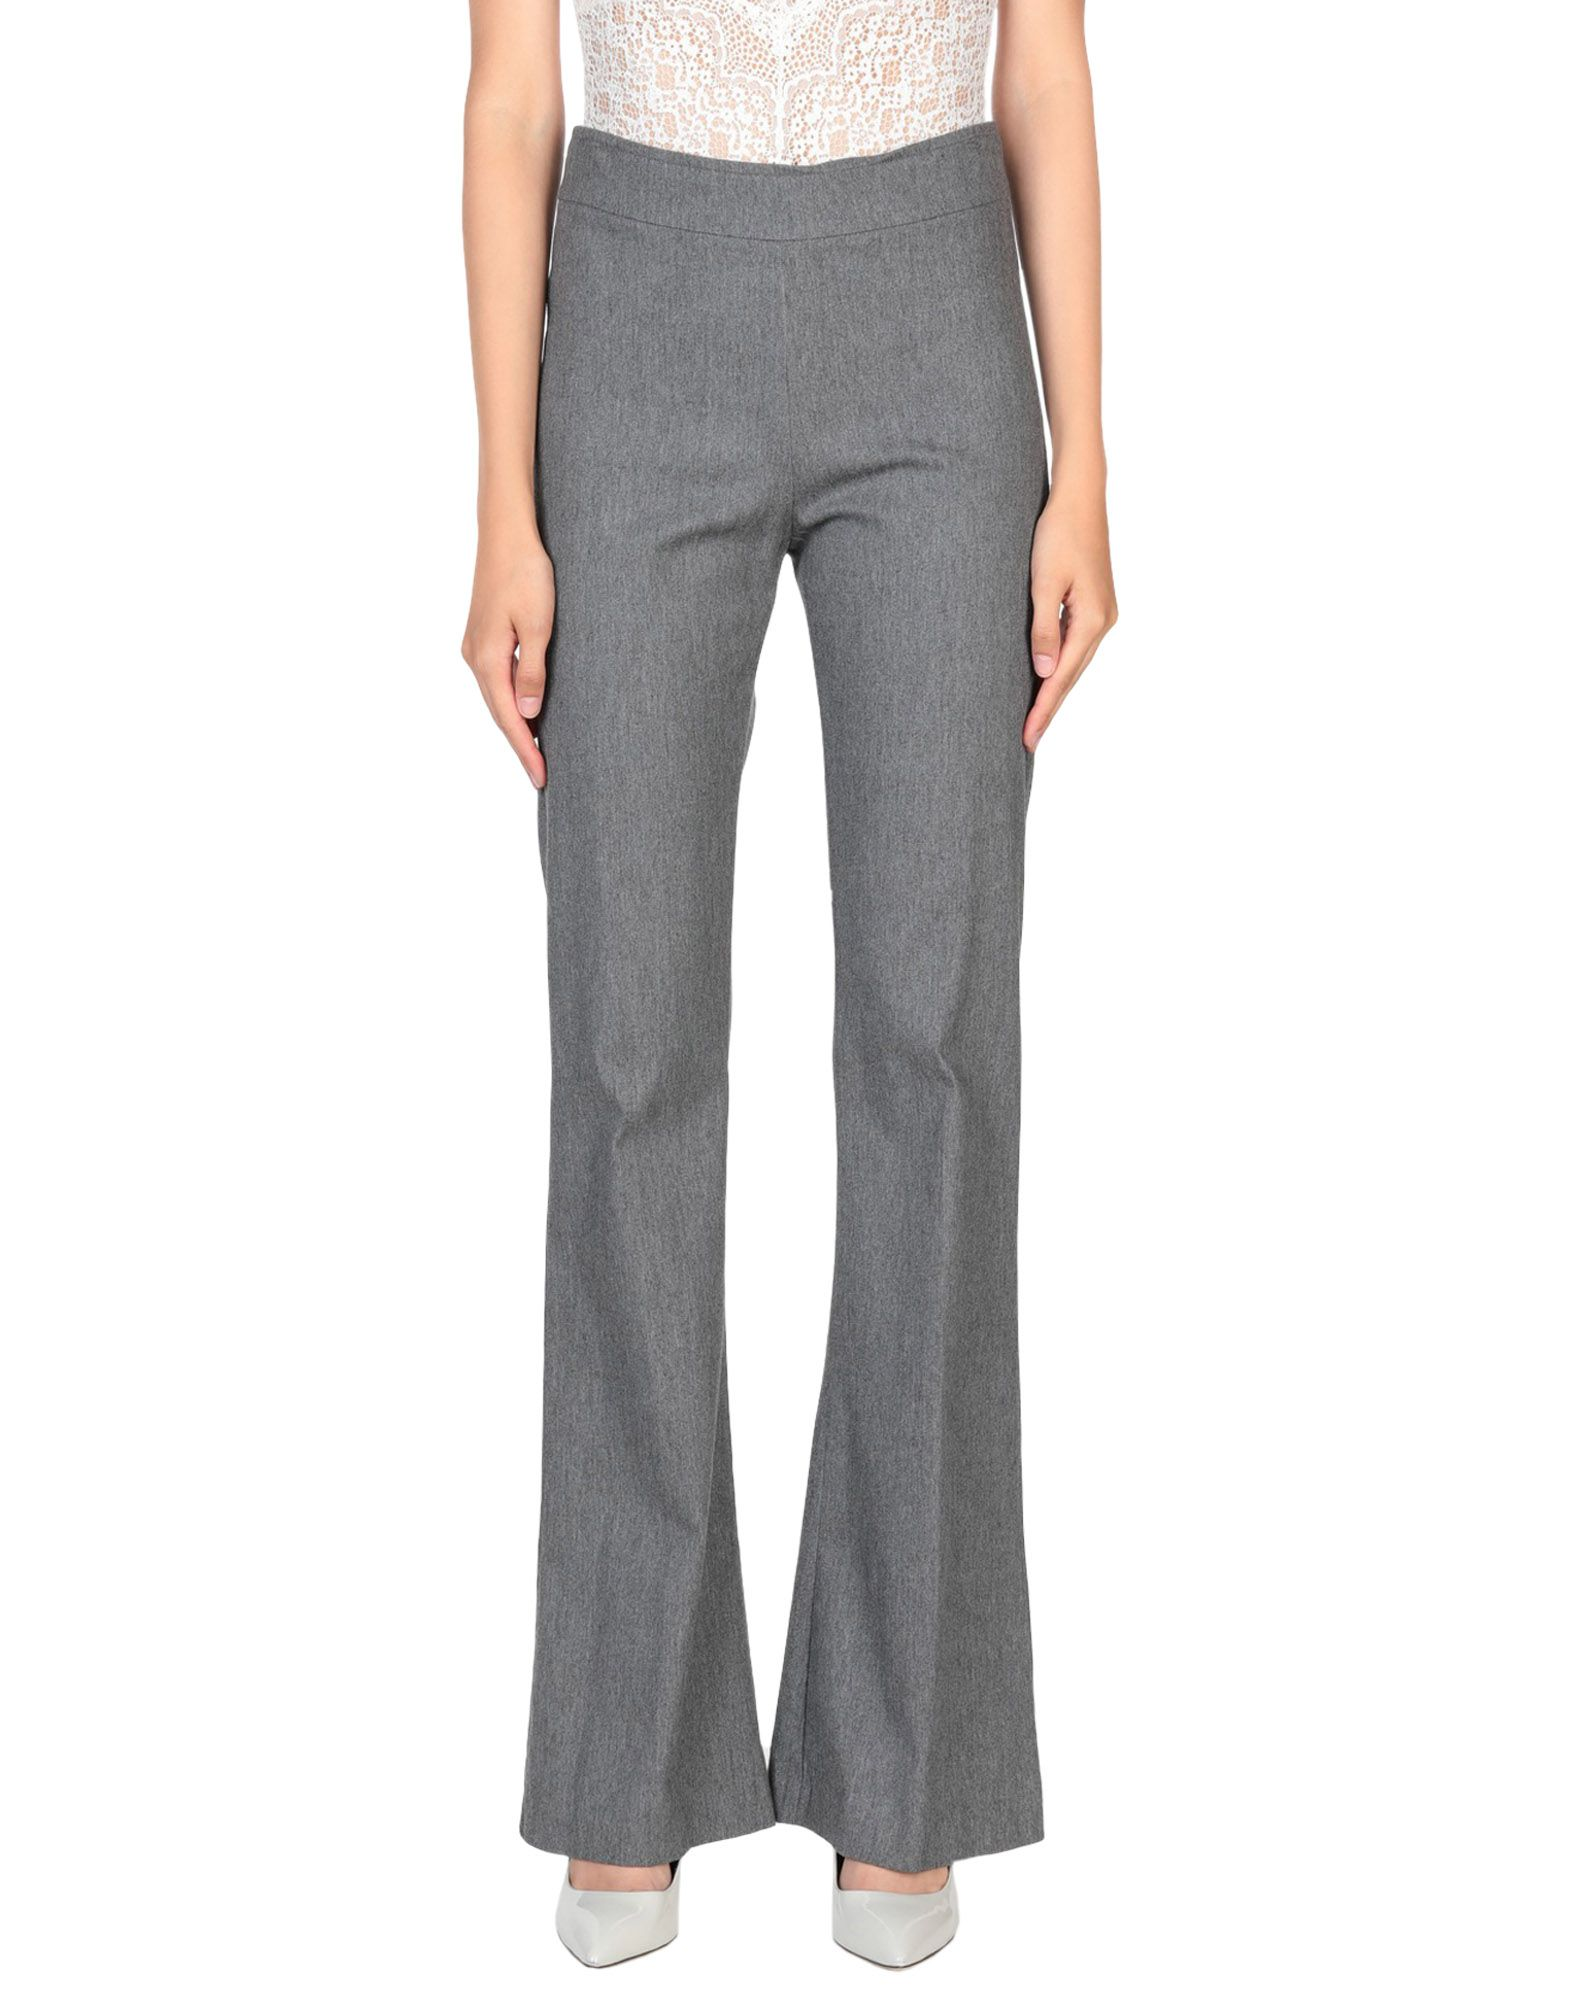 AVENUE MONTAIGNE Casual Pants in Grey